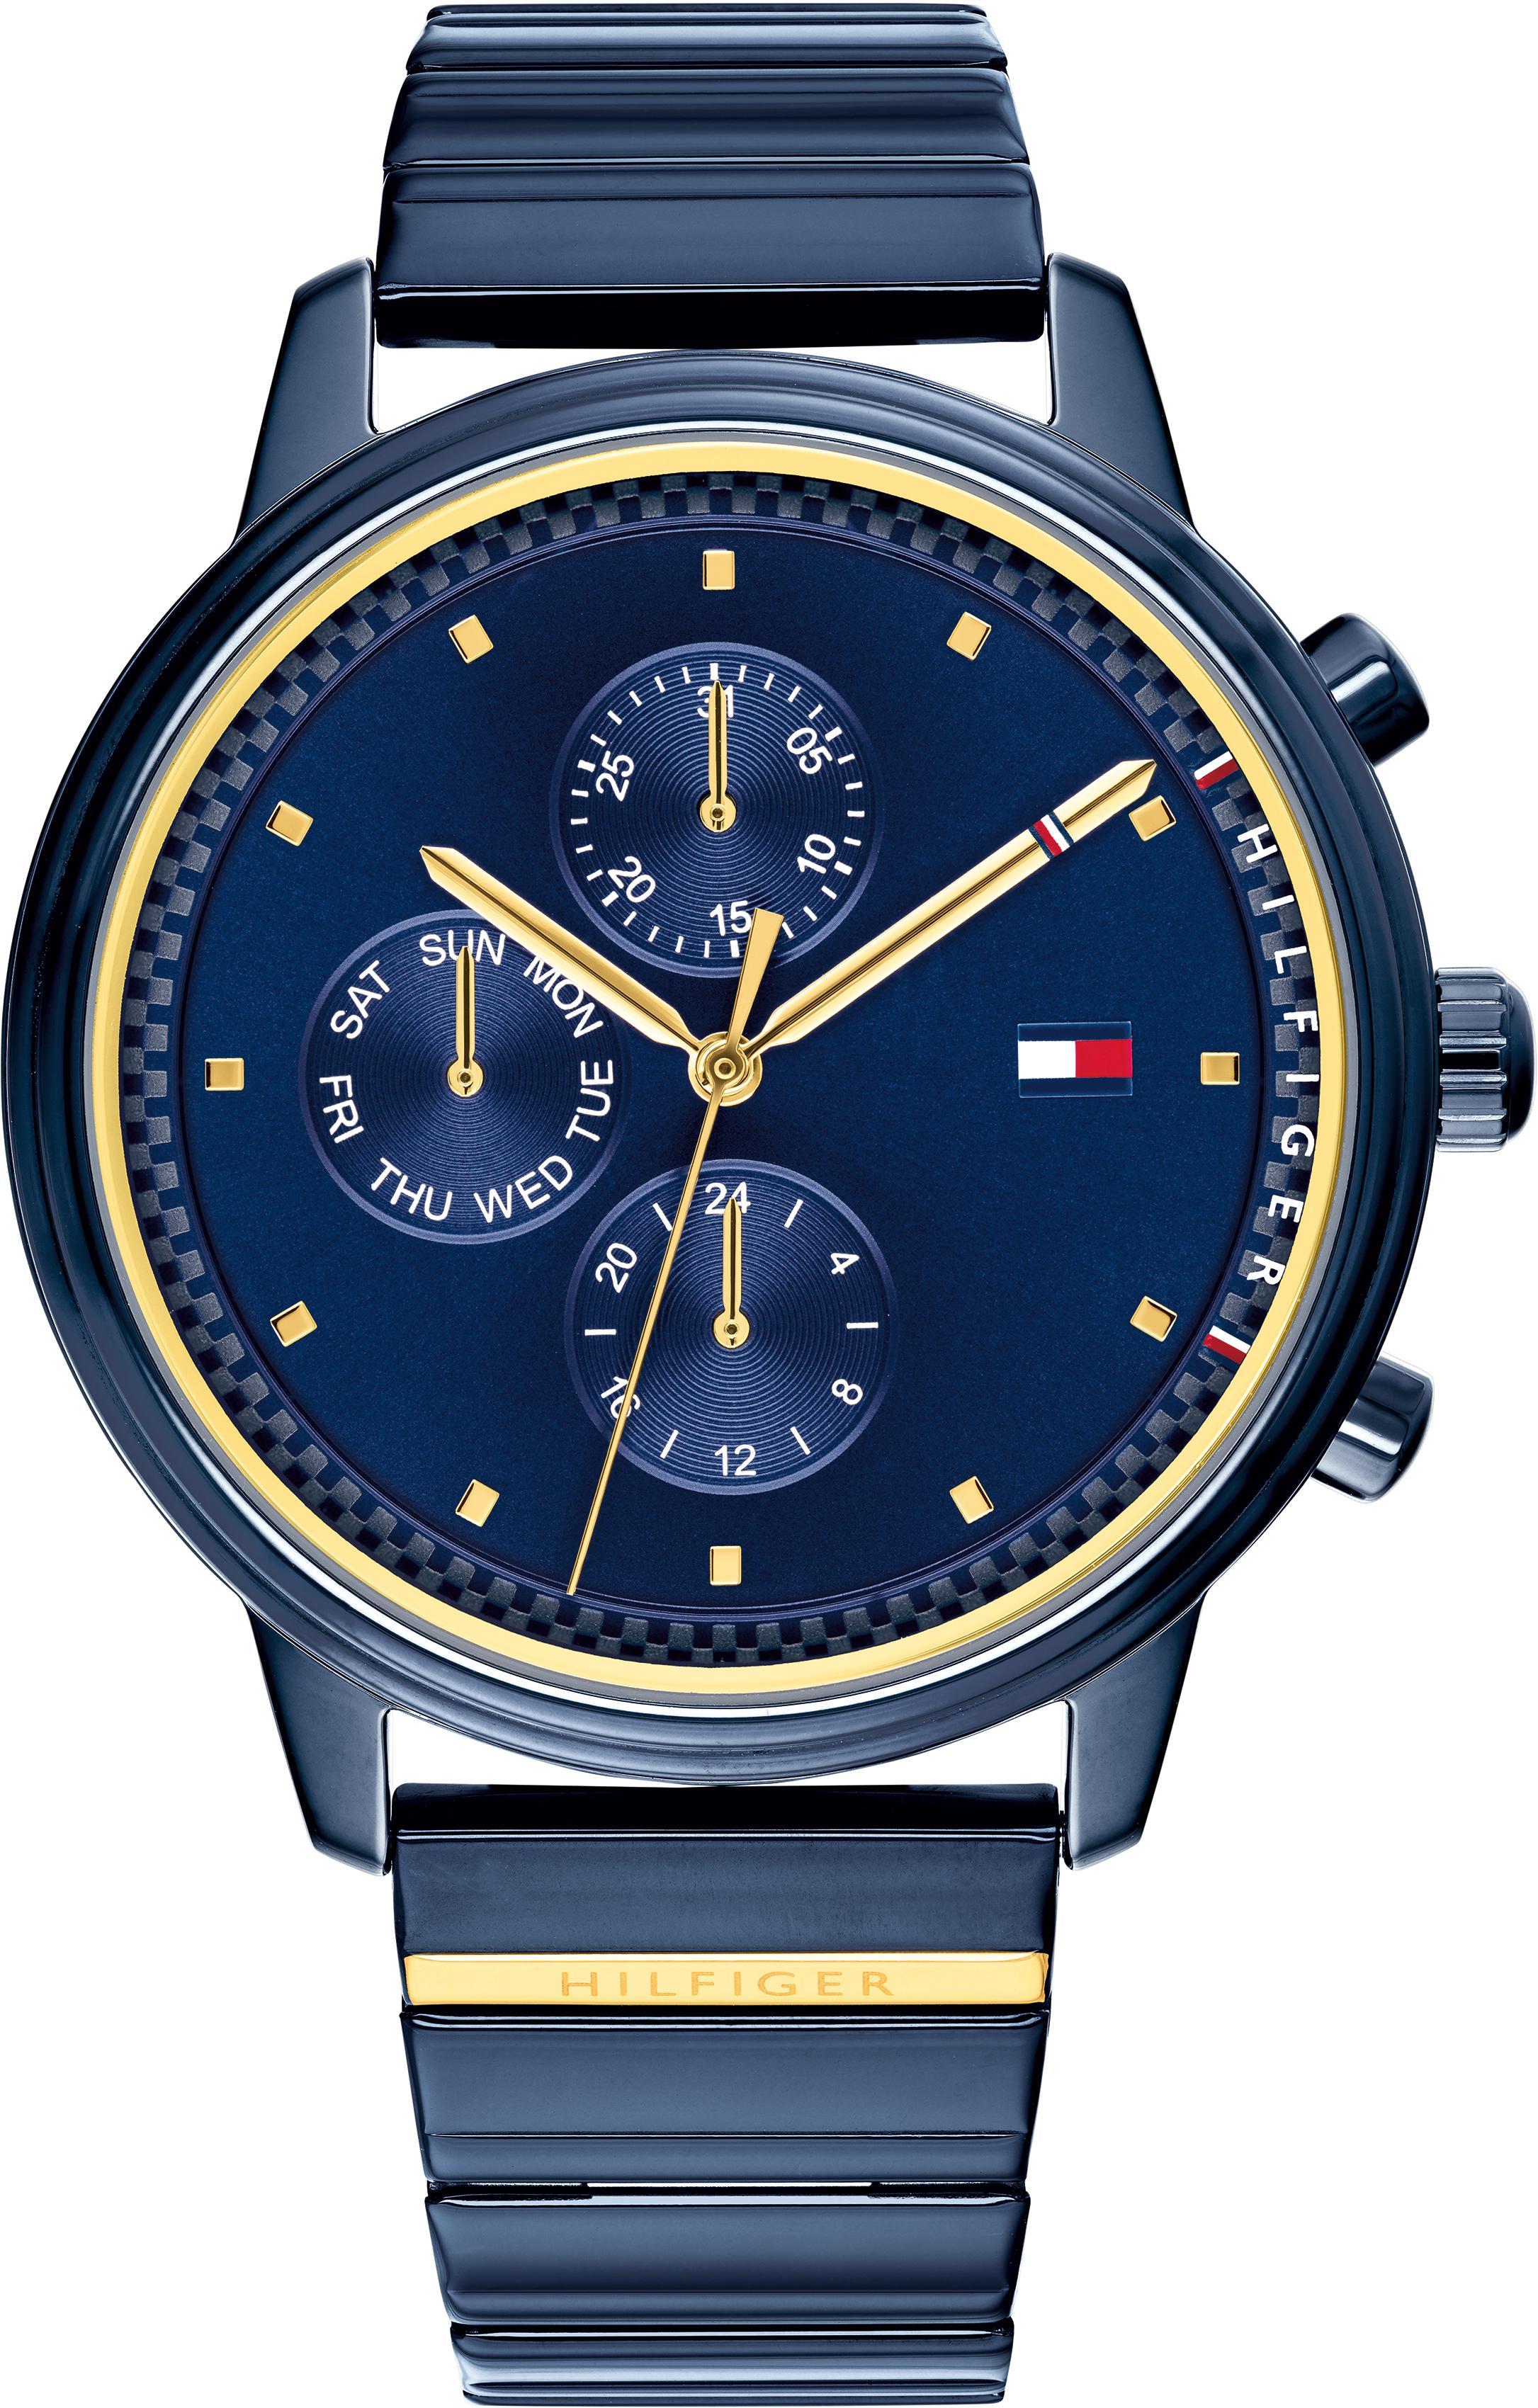 TOMMY HILFIGER Multifunktionsuhr CASUAL SPORT 1781893 | Uhren > Multifunktionsuhren | Blau | Tommy Hilfiger